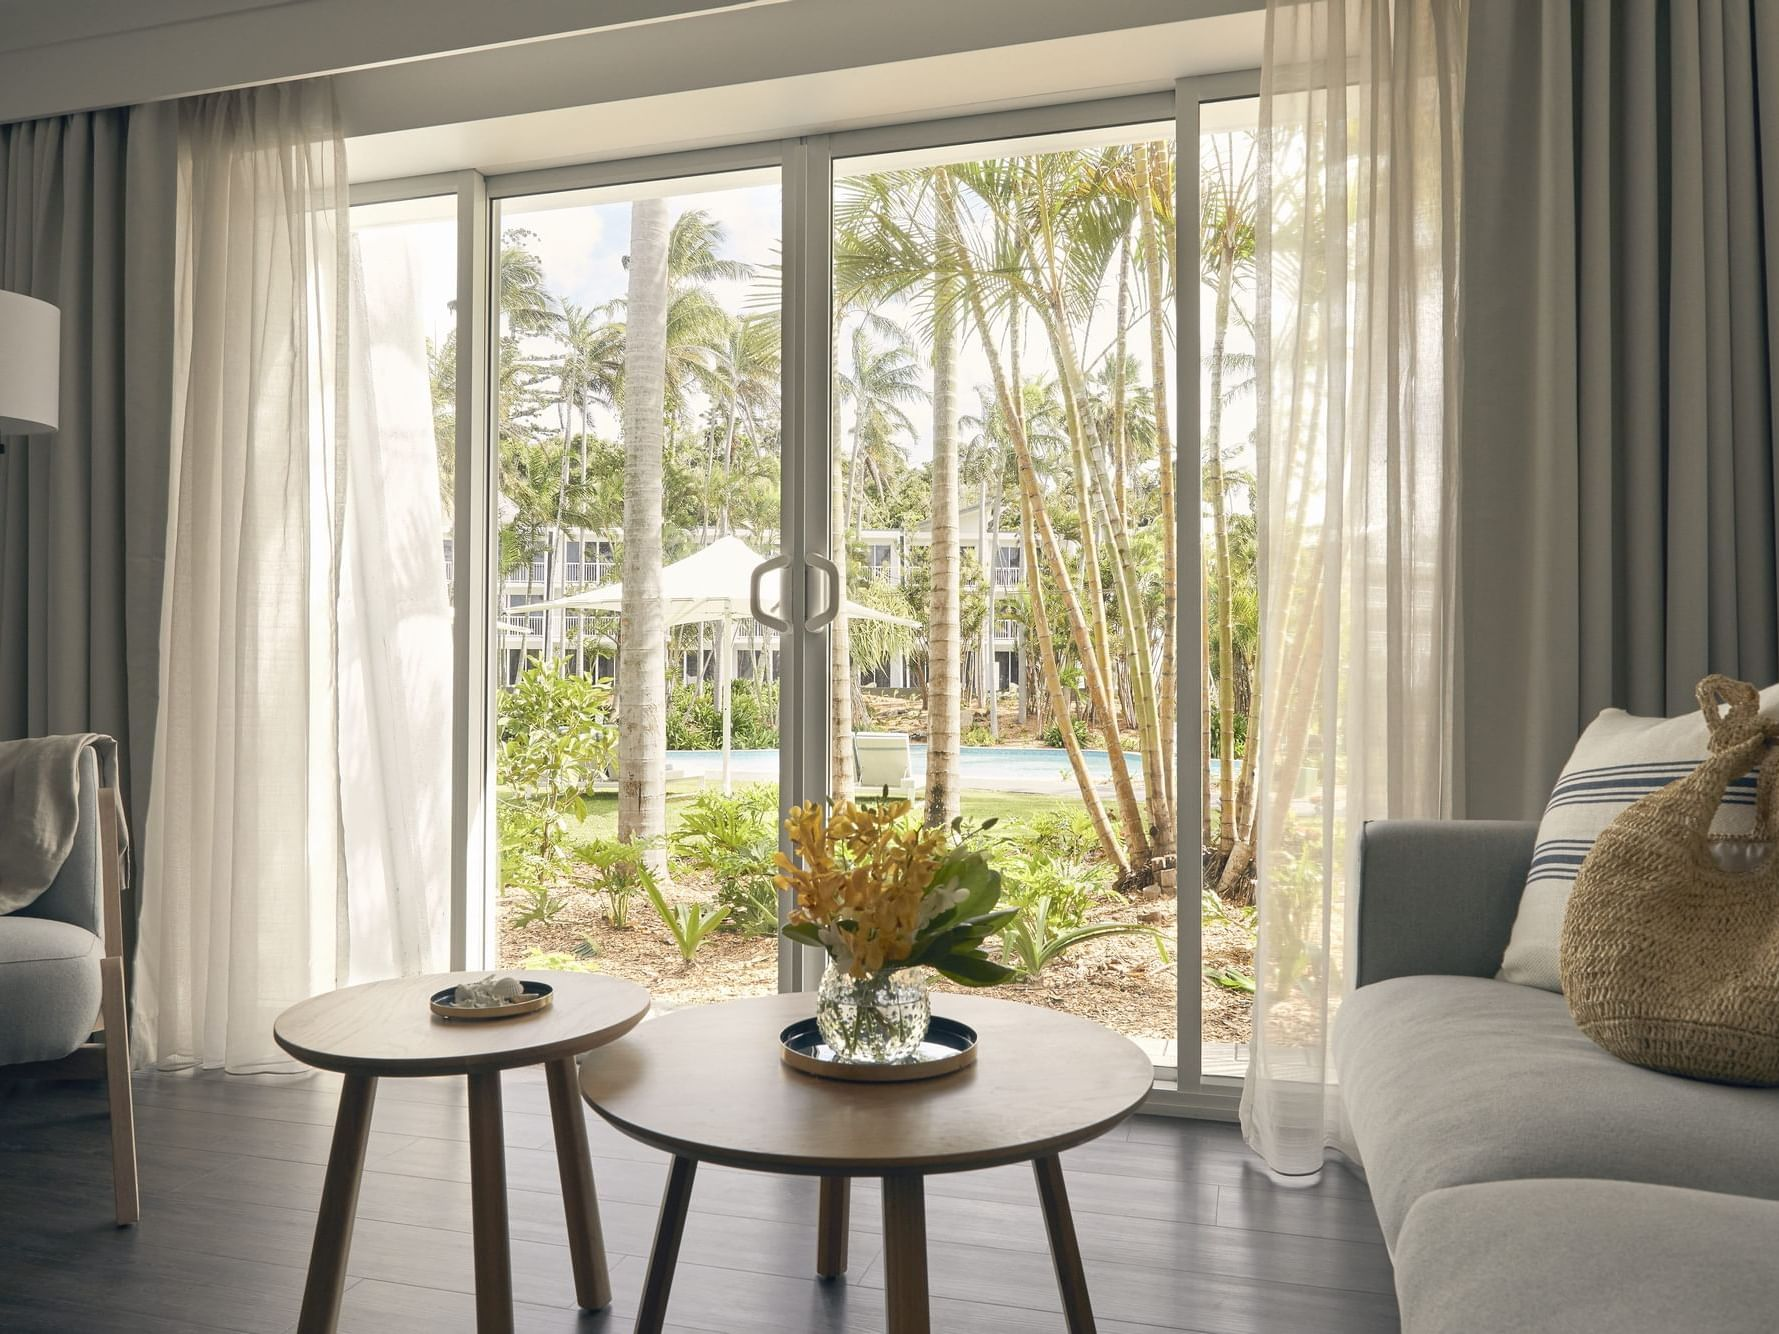 Living area in Superior room at Daydream Island Resort